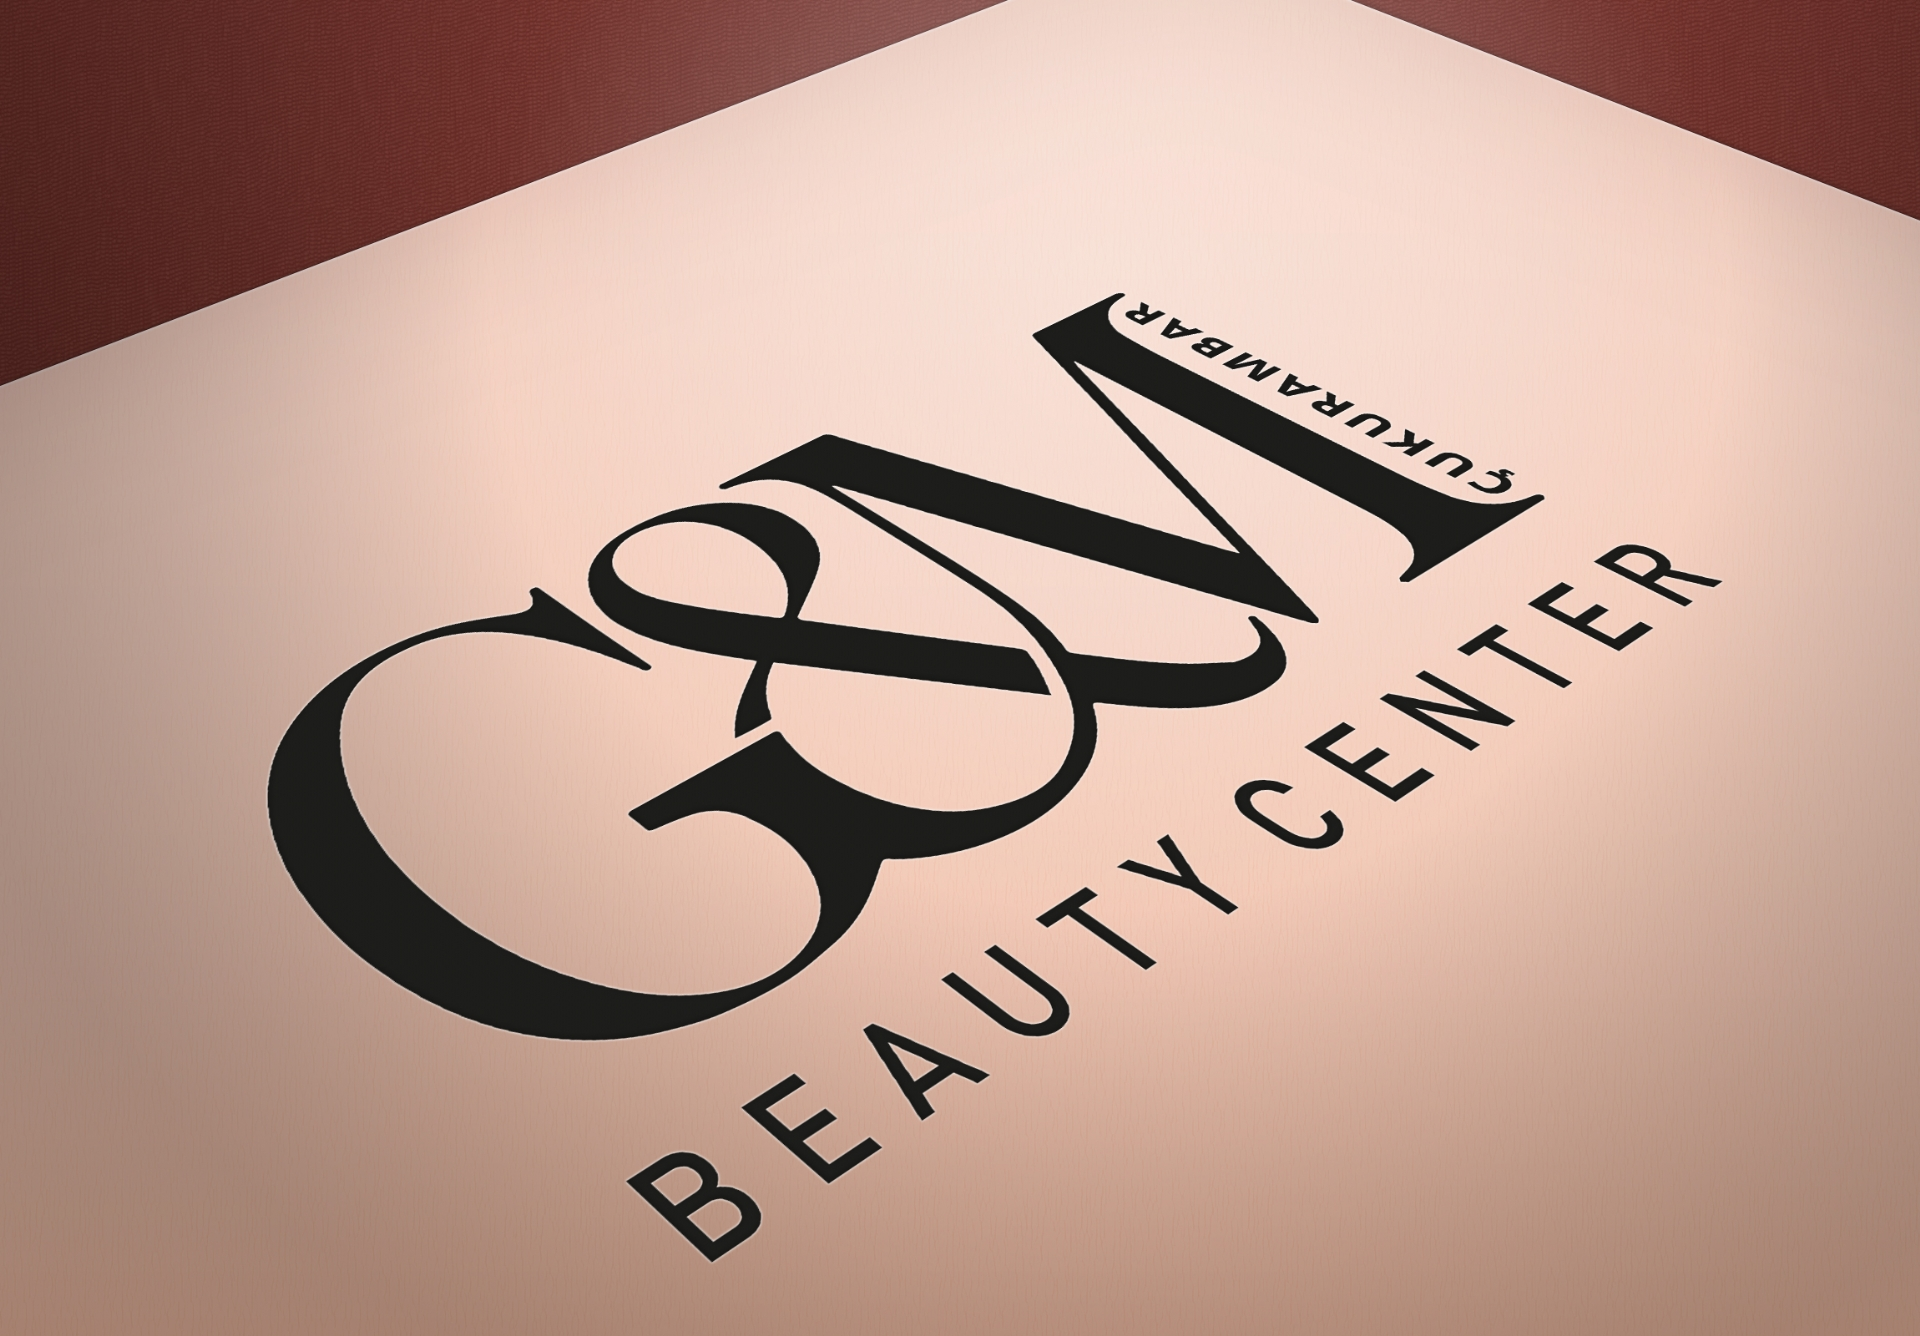 GM BEAUTY CENTER LOGO, CONCEPT